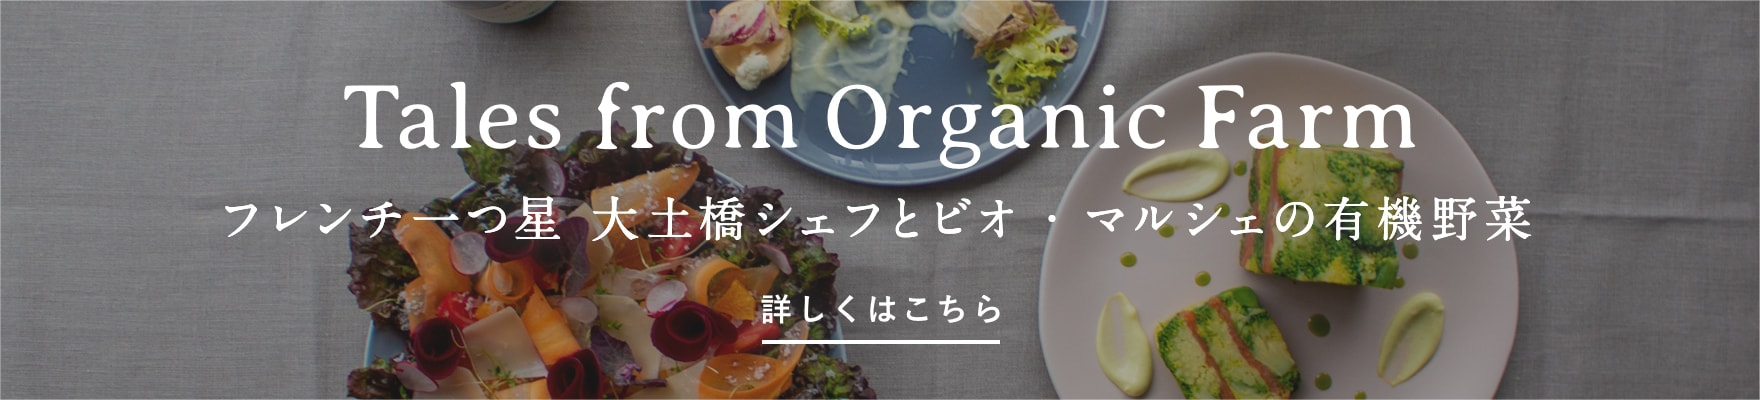 Tales from Organic Farm フレンチ一つ星 大土橋シェフとビオ・マルシェの有機野菜